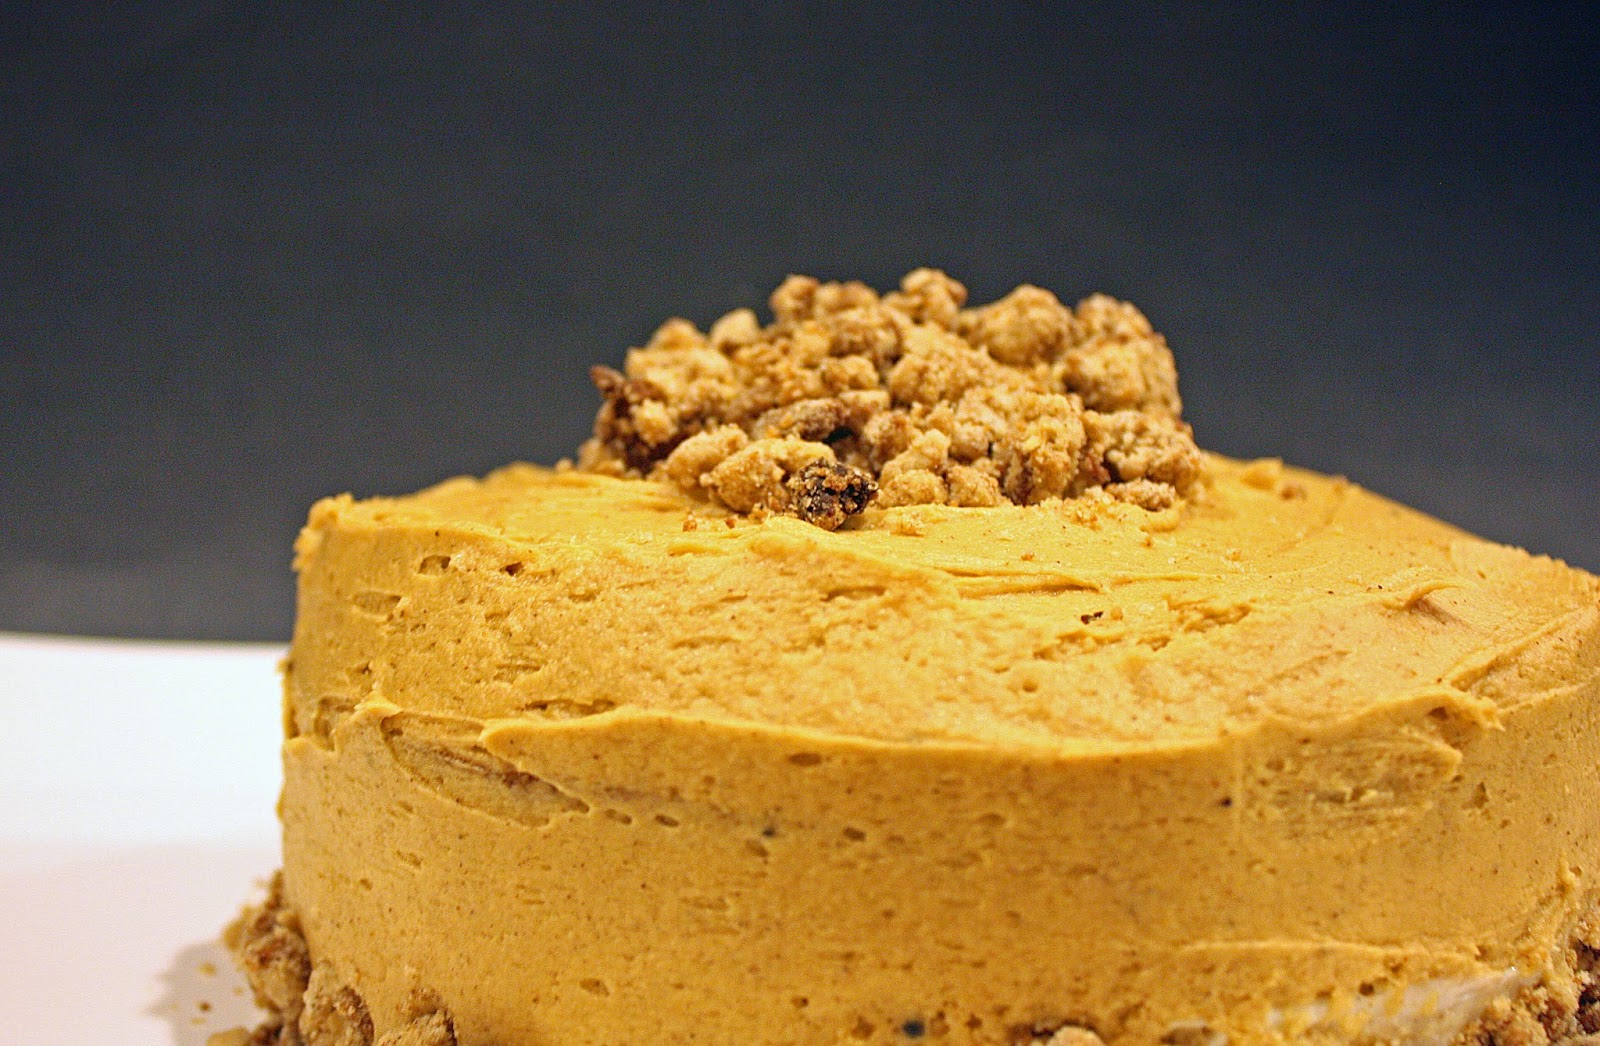 vegan maple gingerbread layer cake with cheesecake filling and spiced crumbs